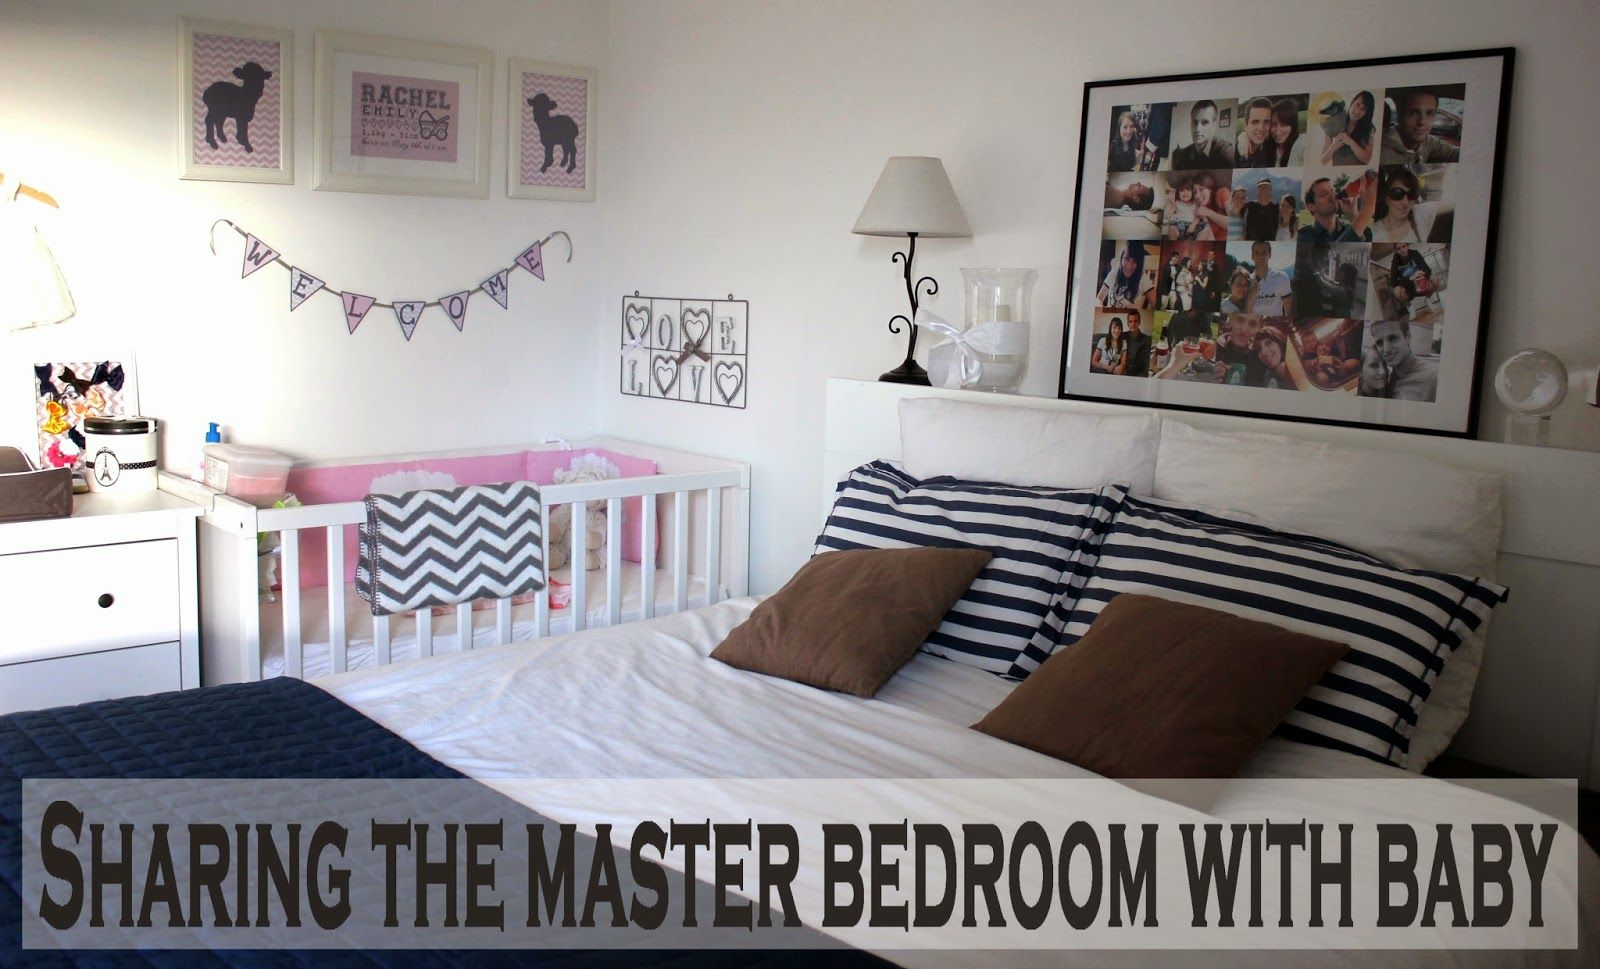 Shared Bedroom Ideas For Mom And Toddler Of Bedroom Ideas Shared - Shared bedroom ideas for mom and toddler